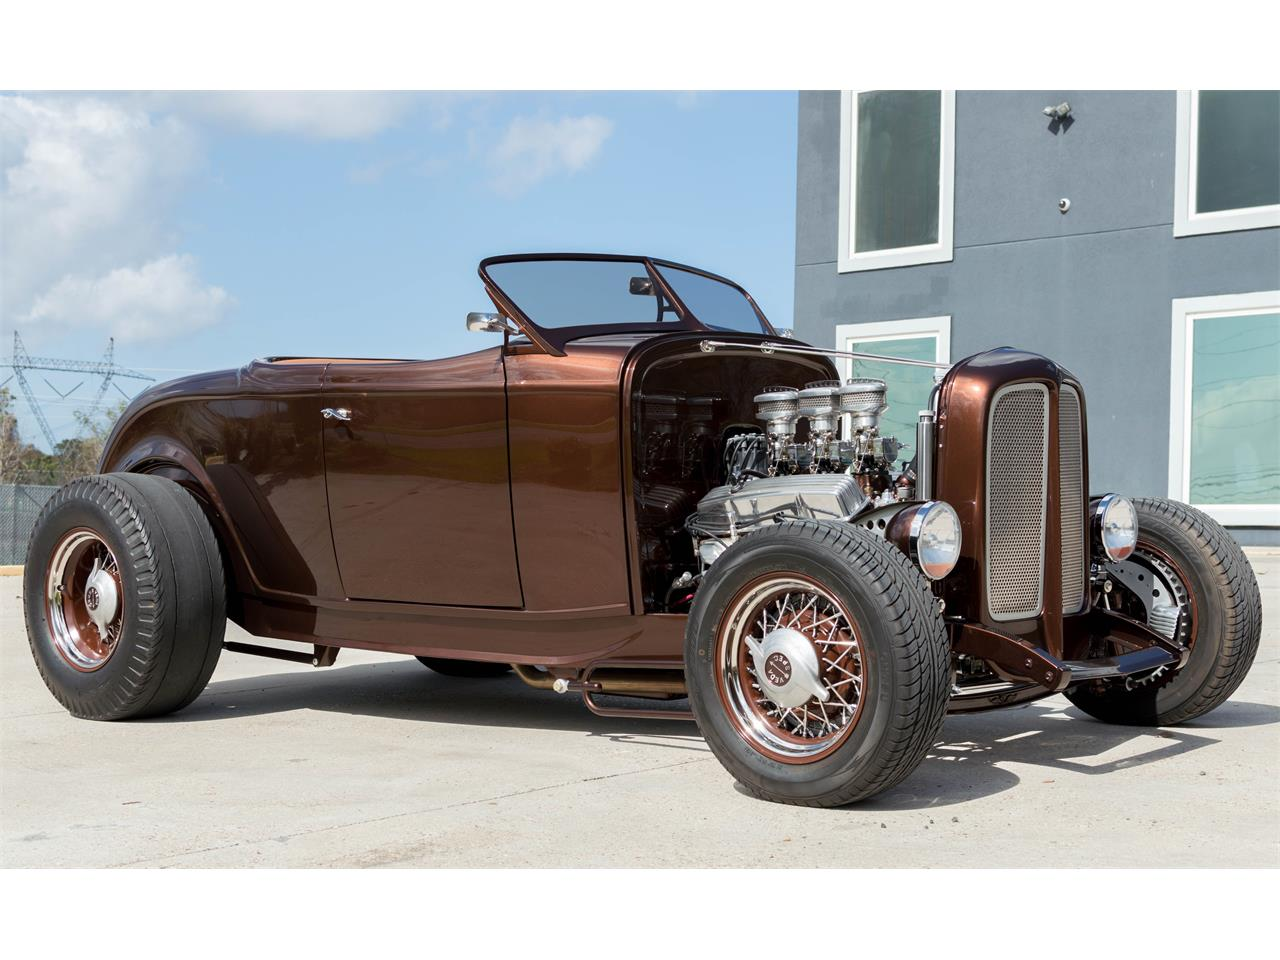 Large picture of 1932 ford roadster 65988 00 offered by a private seller mwck